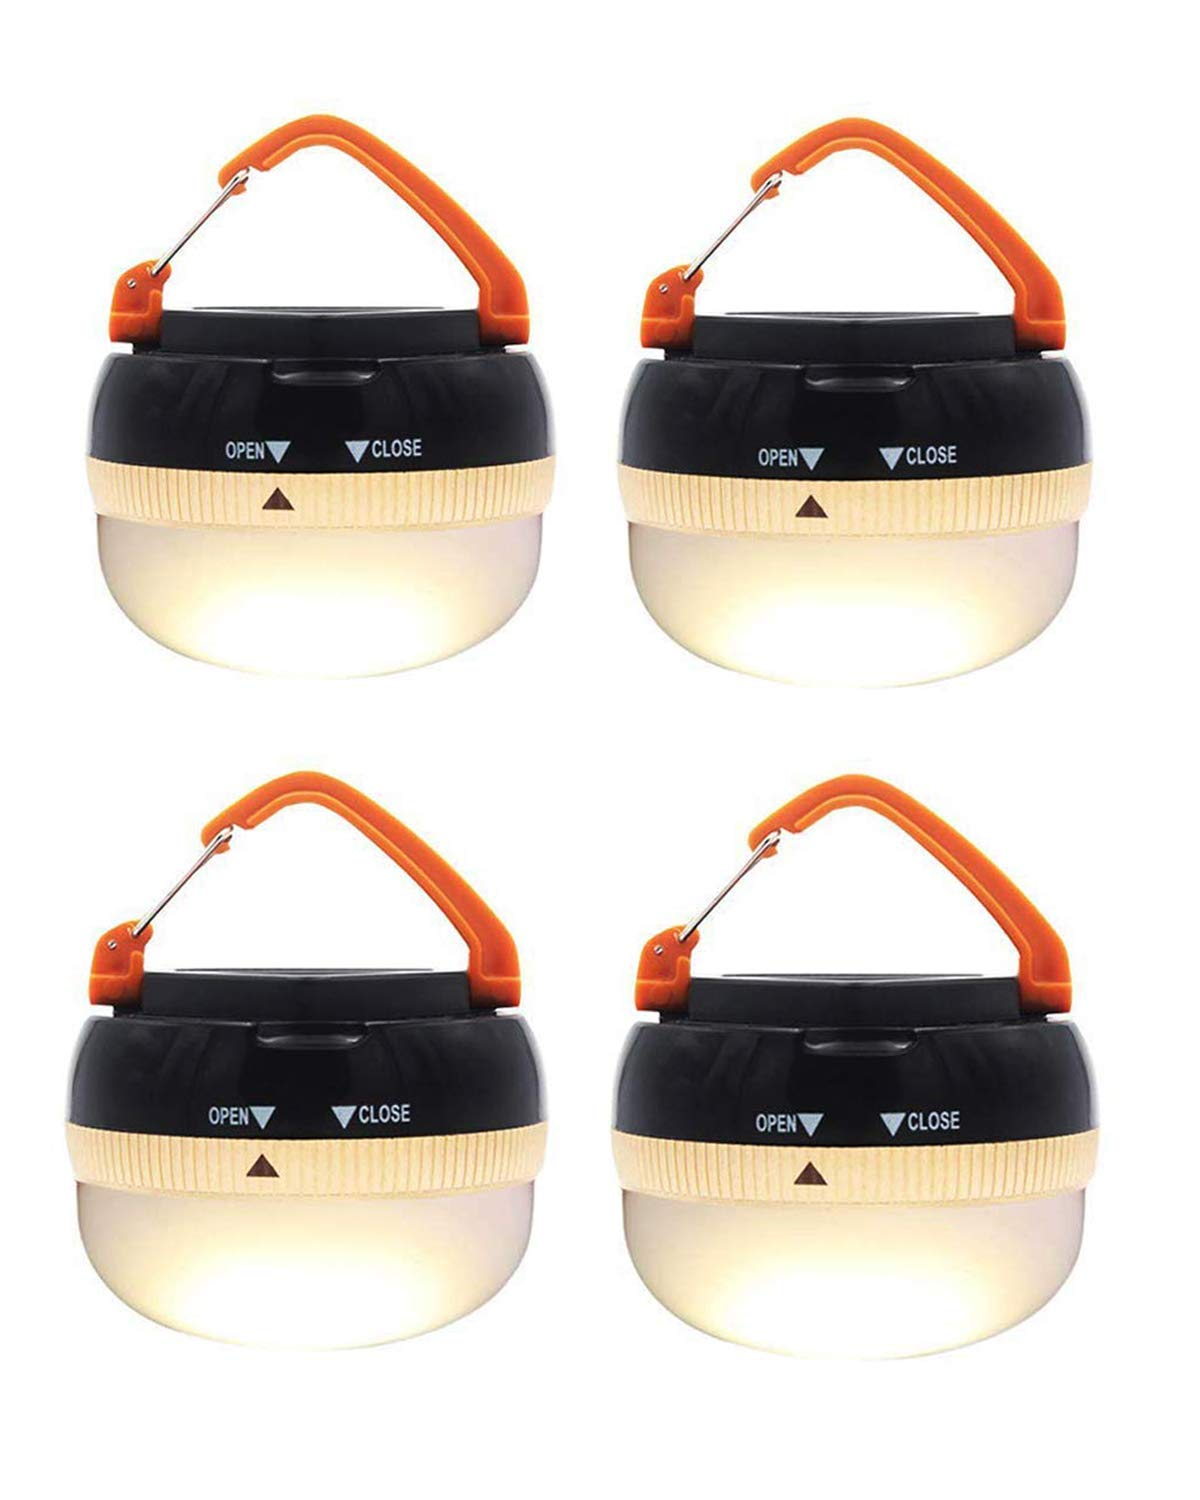 Restractable Hook AuKvi Brightest LED Lantern Portable Camping Lights Outdoor Tent Light Hanging Camping Lamp with 5 Modes 2 Pack